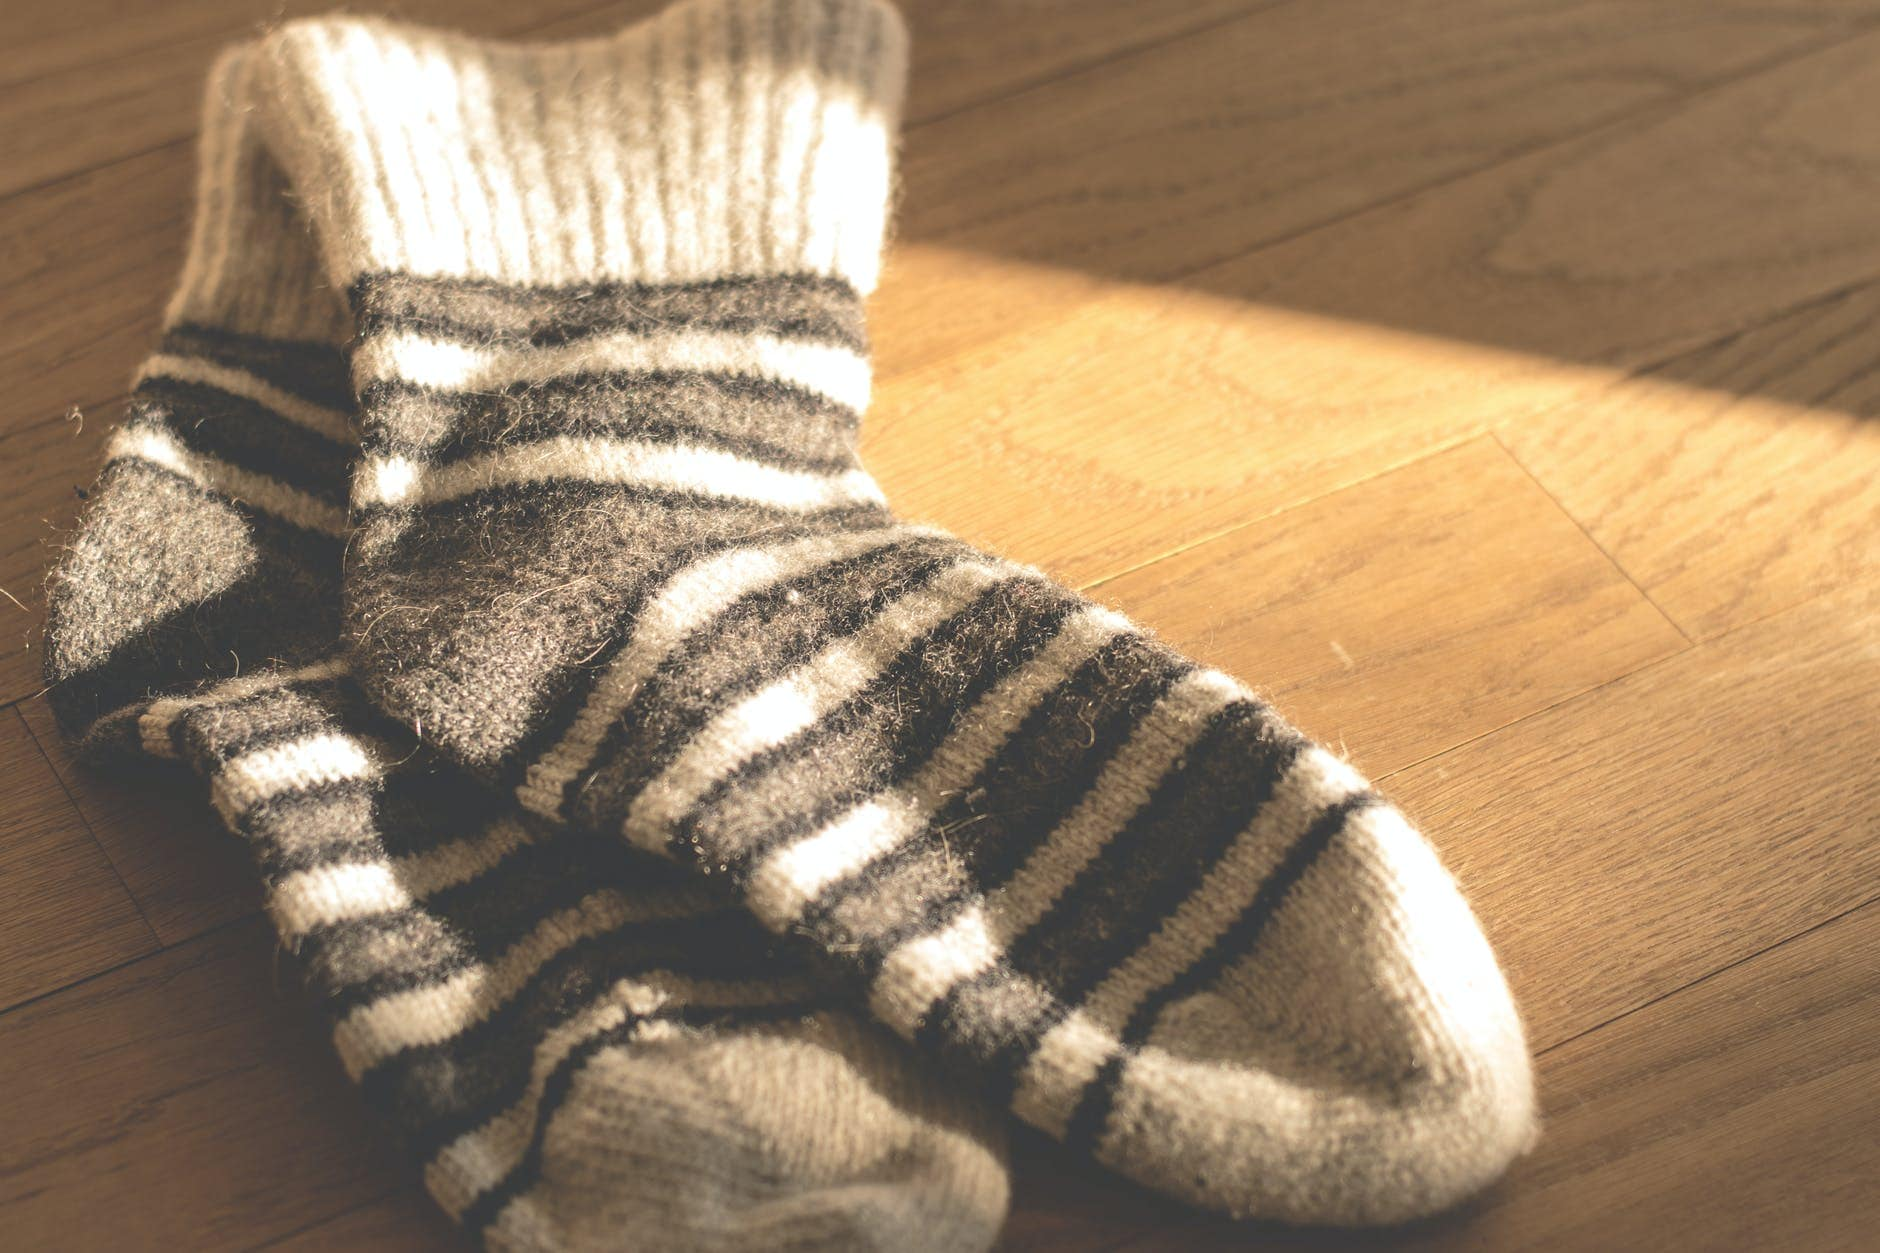 How Long Does It Take To Knit A Pair Of Socks?